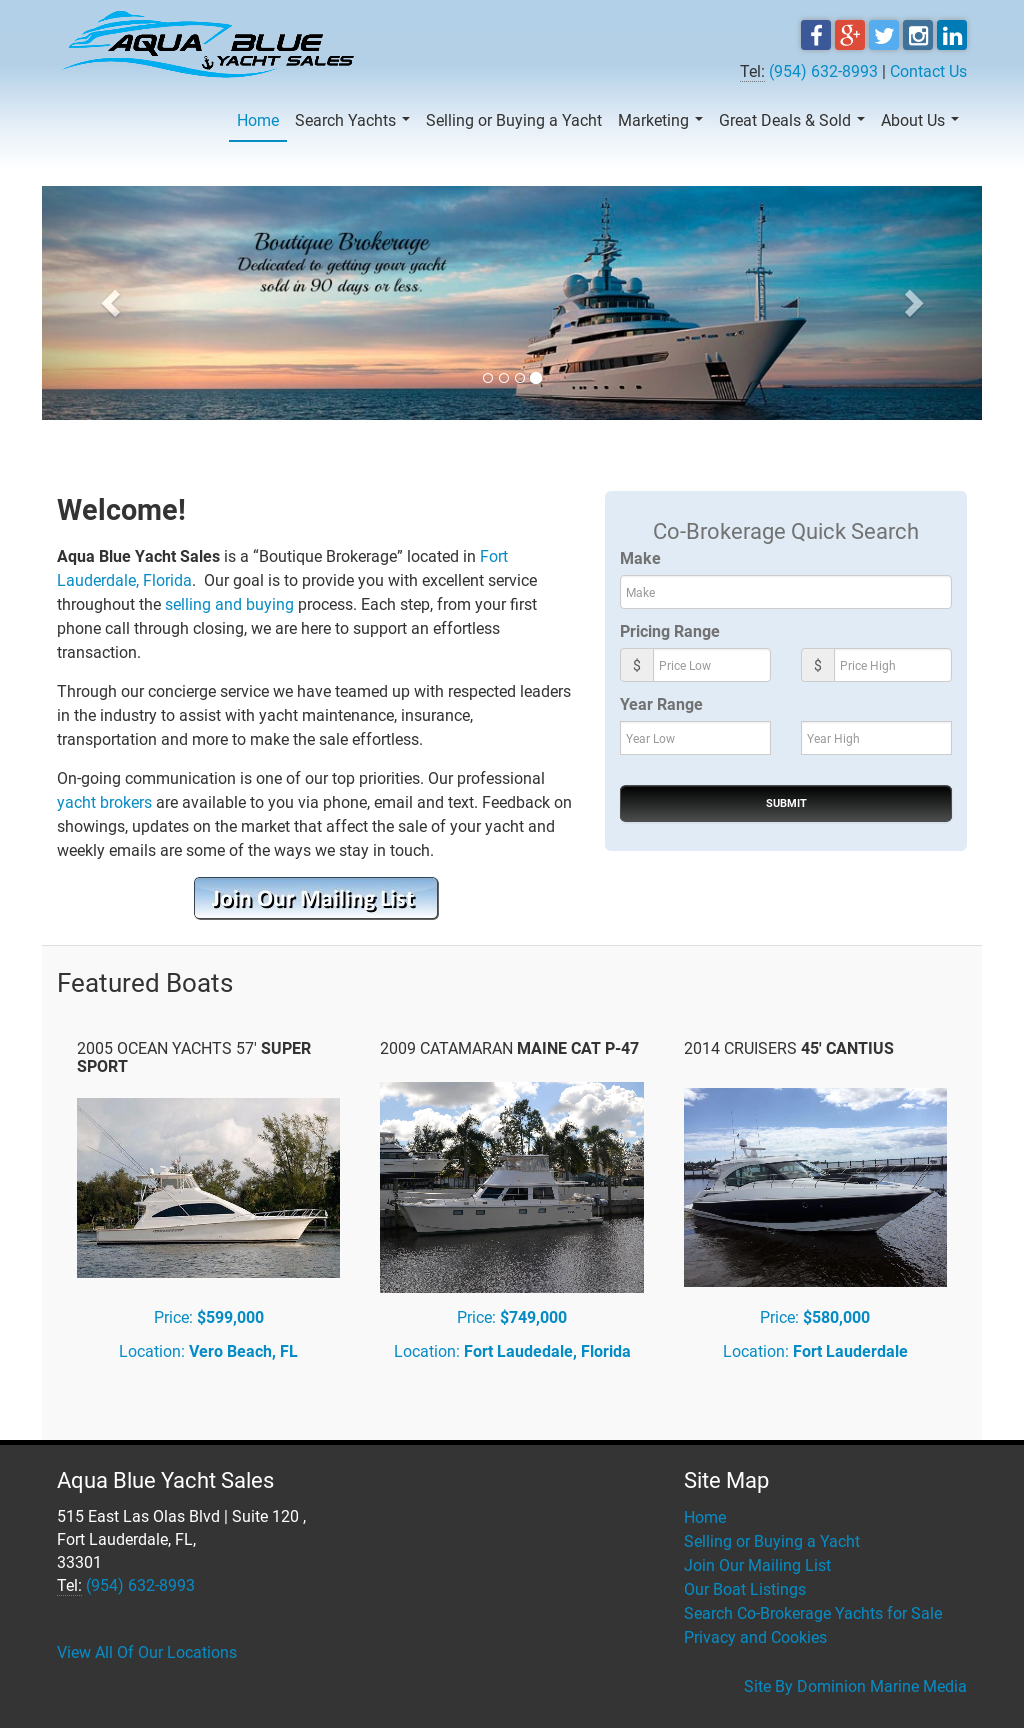 Aqua Blue Yacht Sales Competitors, Revenue and Employees